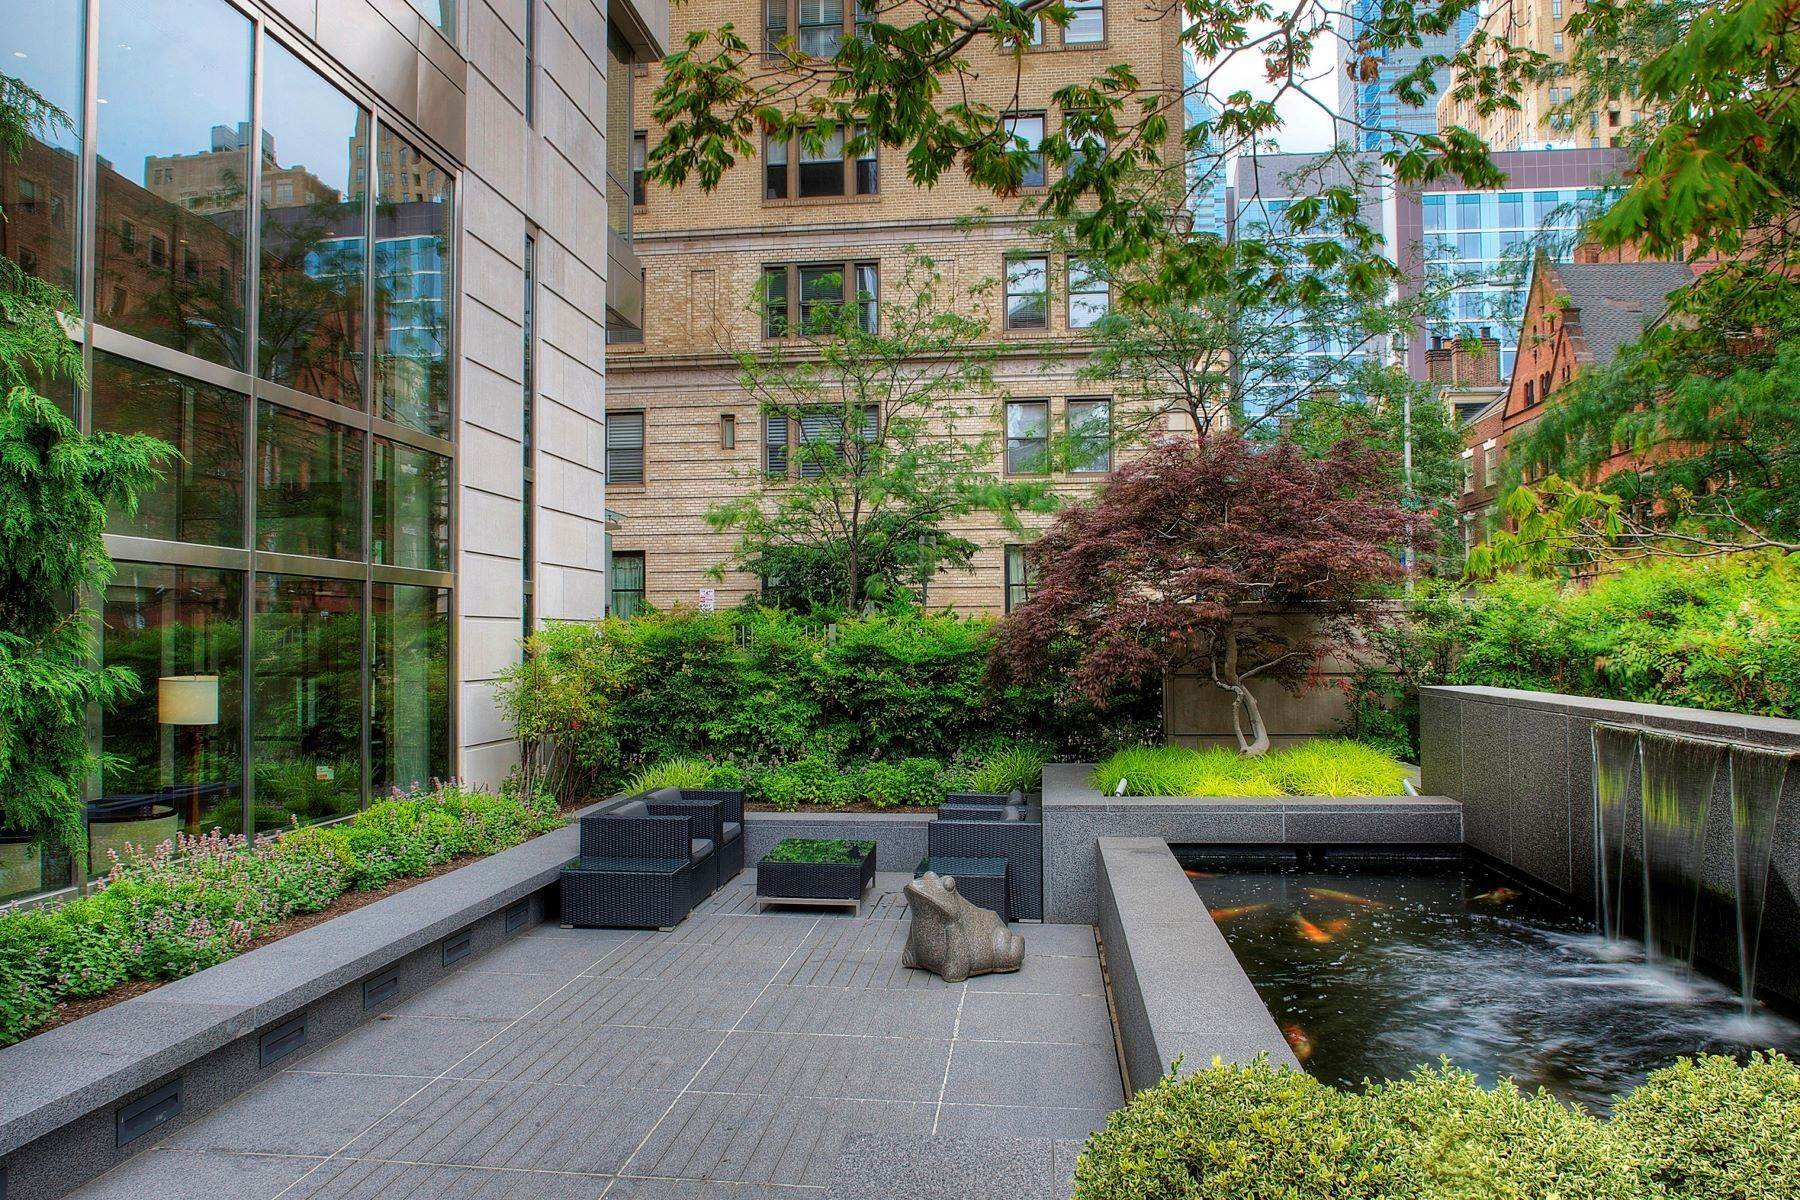 2. Condominiums for Sale at 1706 RITTENHOUSE SQ #2401, 2401 Philadelphia, Pennsylvania 19103 United States